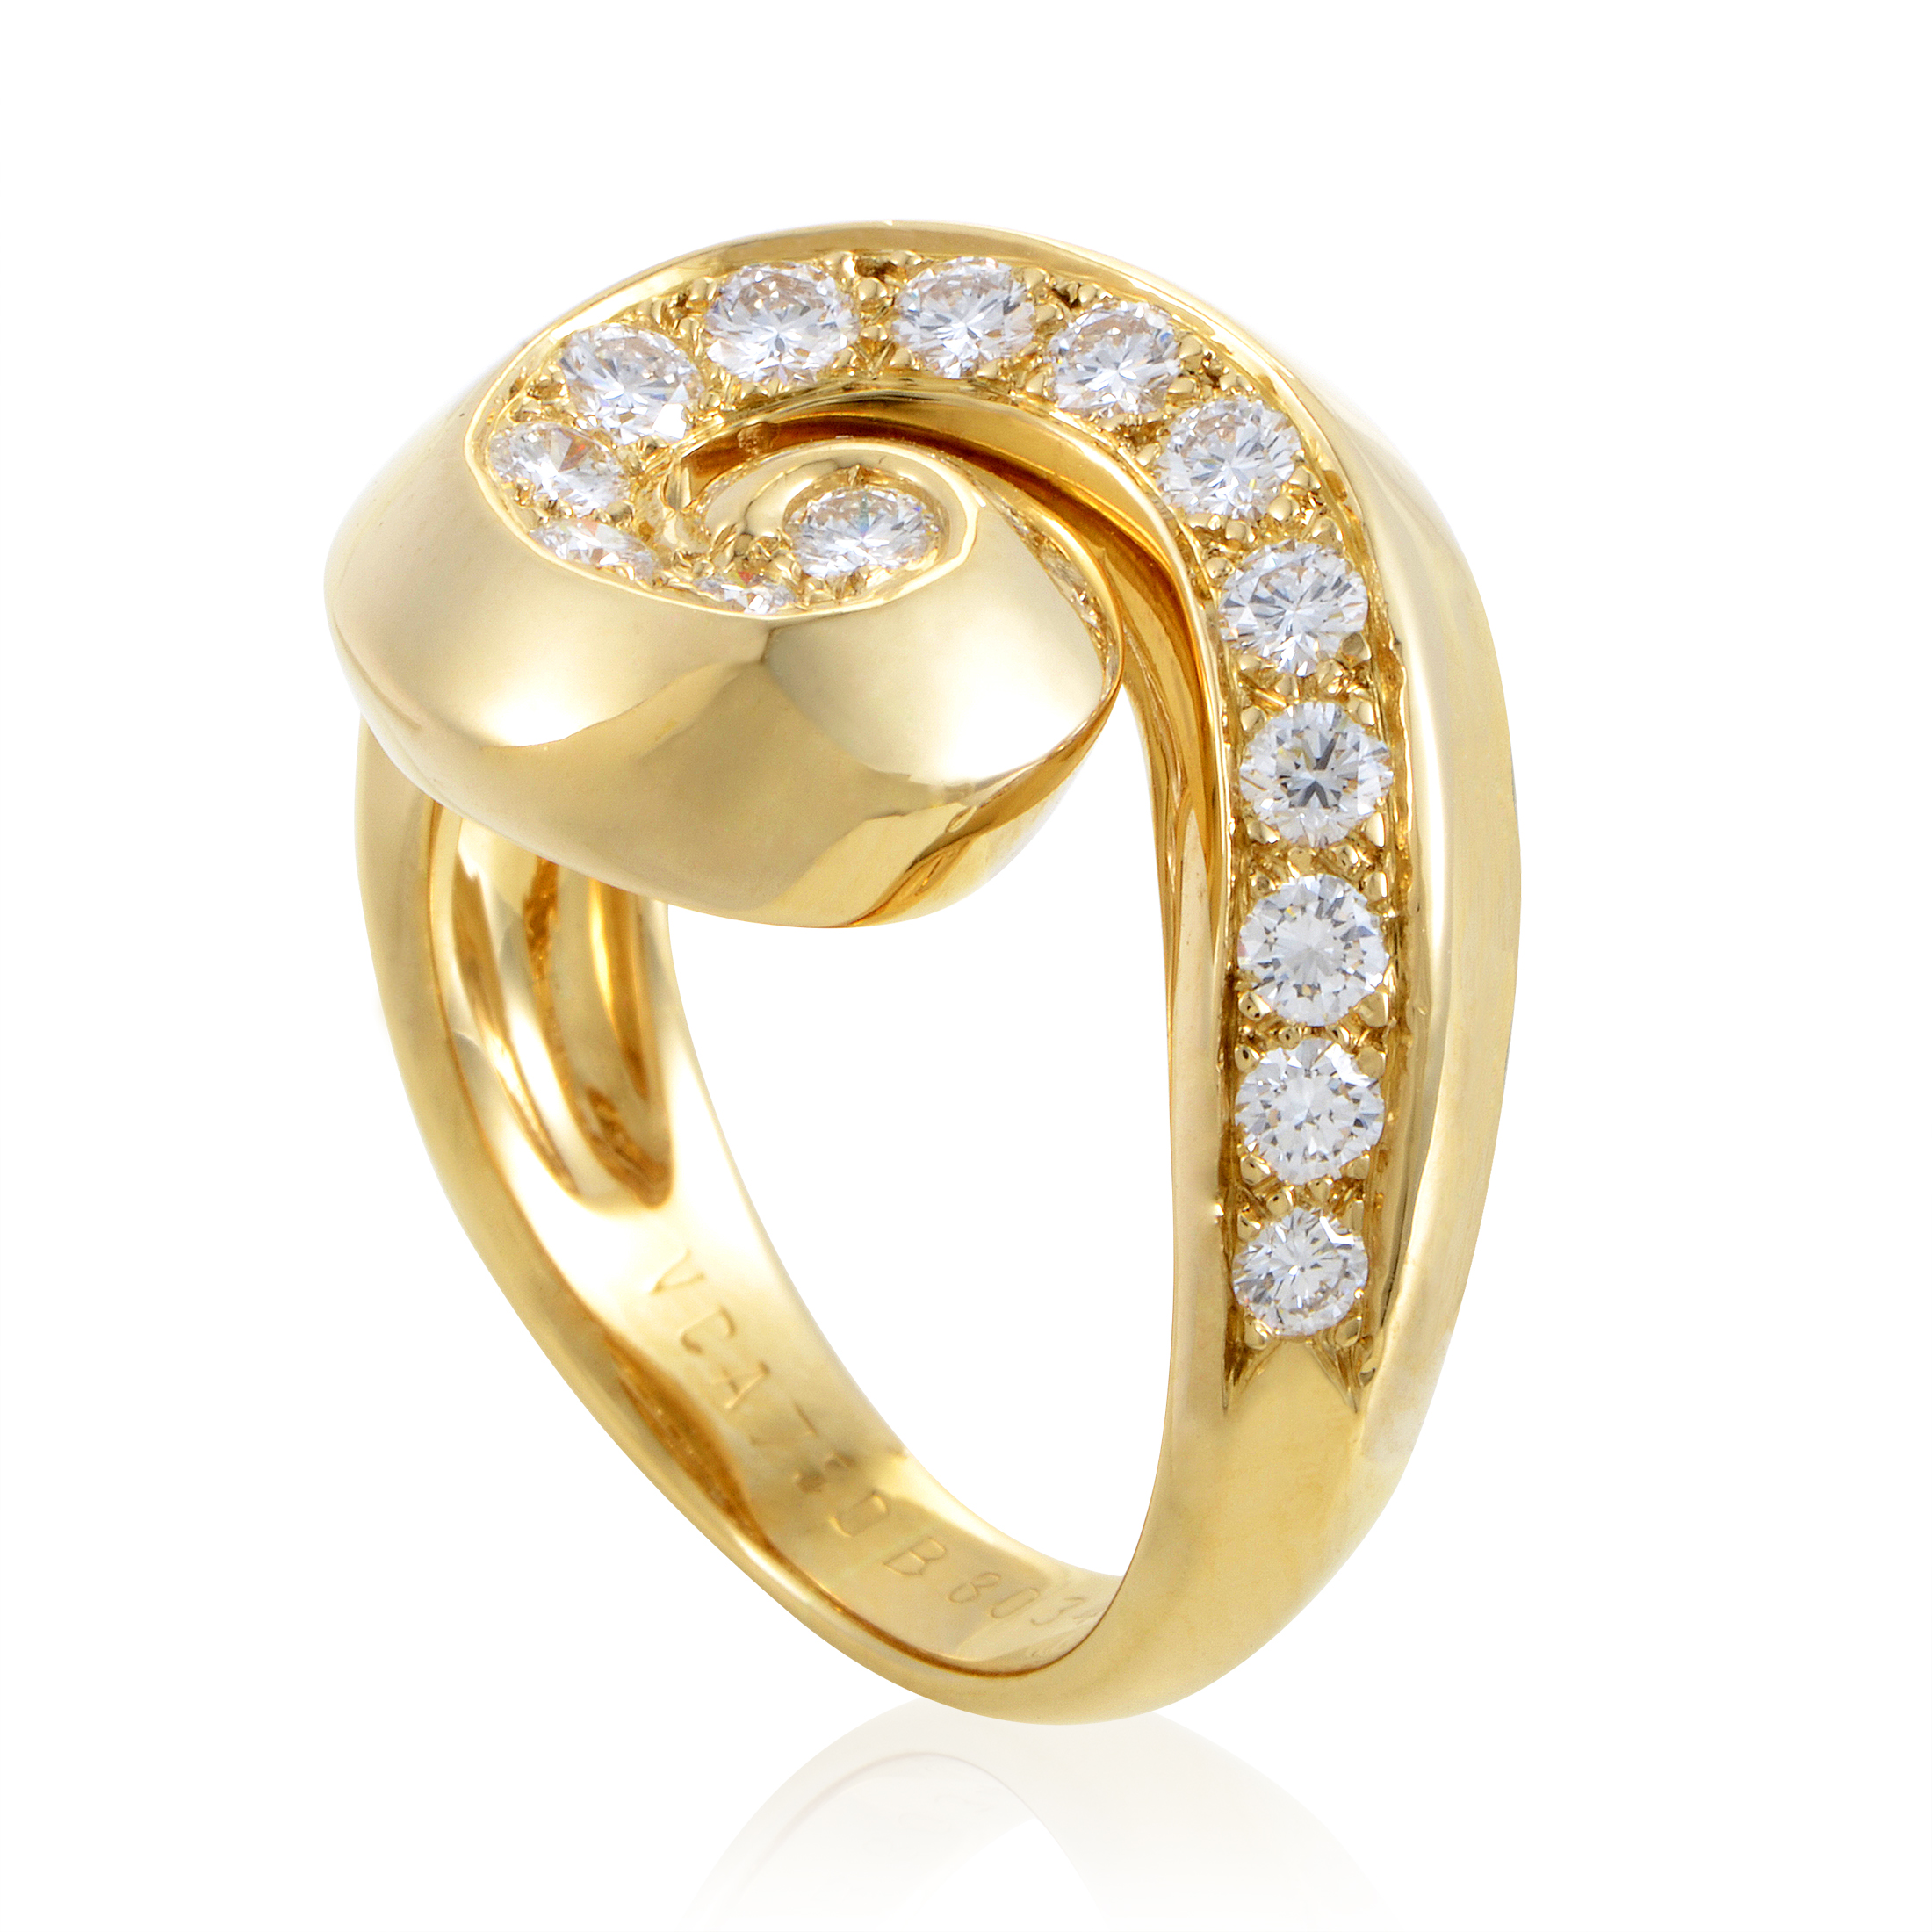 Van Cleef & Arpels Women's Diamond Breeze 18K Yellow Gold Ring